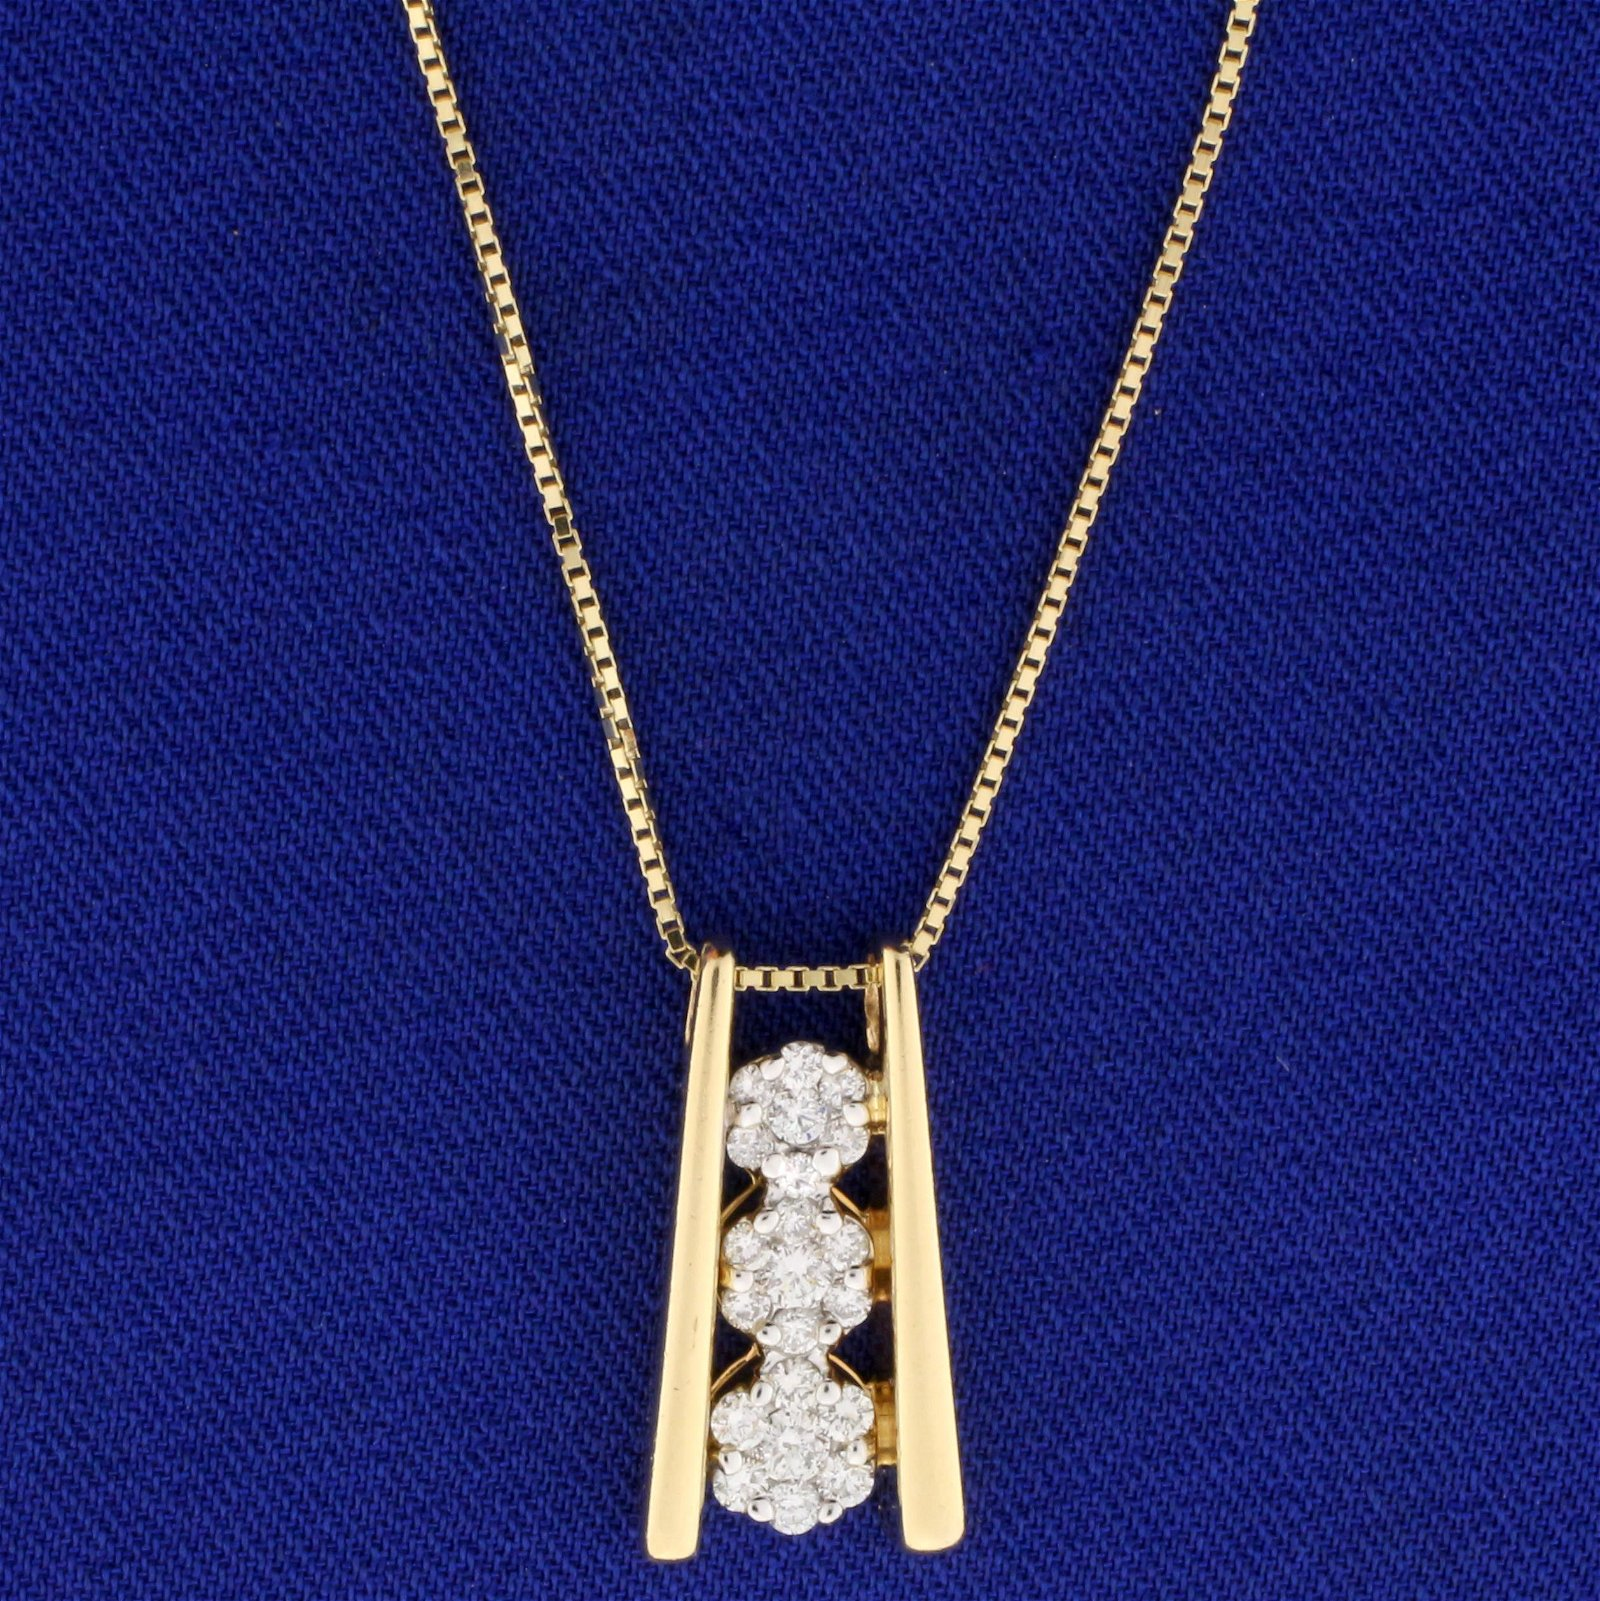 1/2ct TW Diamond Necklace in 14K Yellow and White Gold